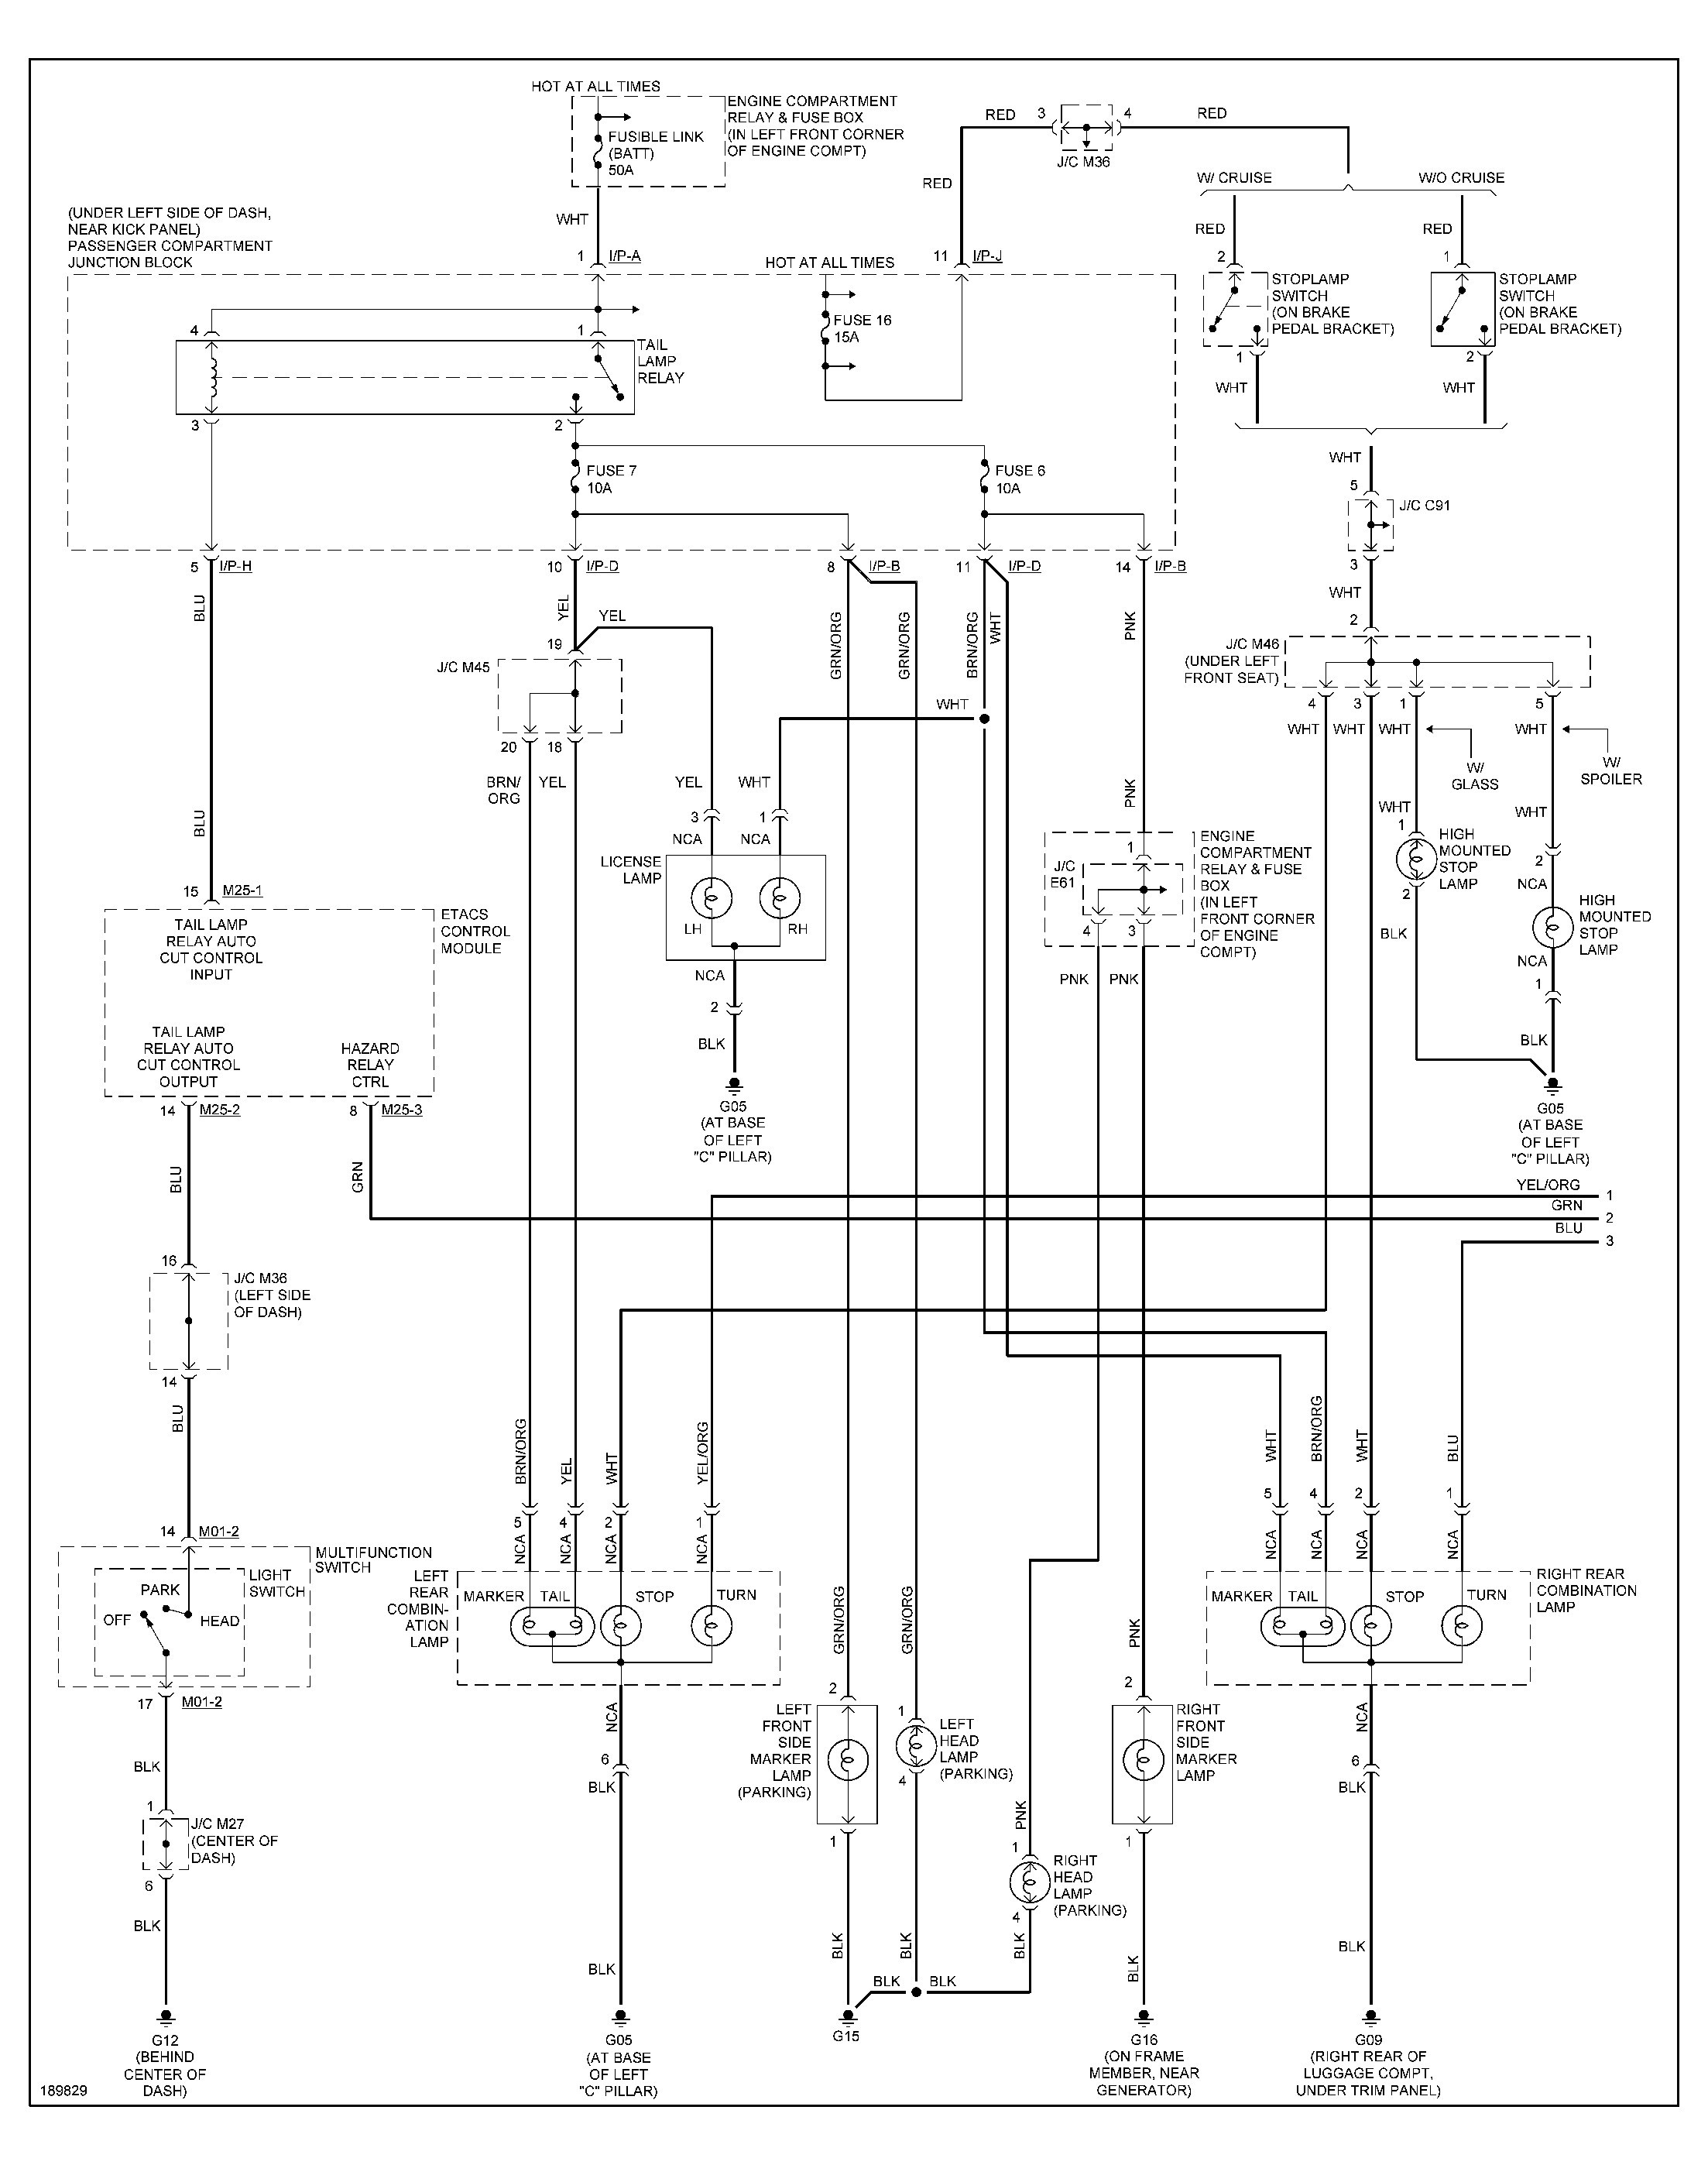 94 Honda Accord Engine Diagram 2005 Hyundai Accent Engine Diagram Honda Accord 1994 Engine Diagram Of 94 Honda Accord Engine Diagram